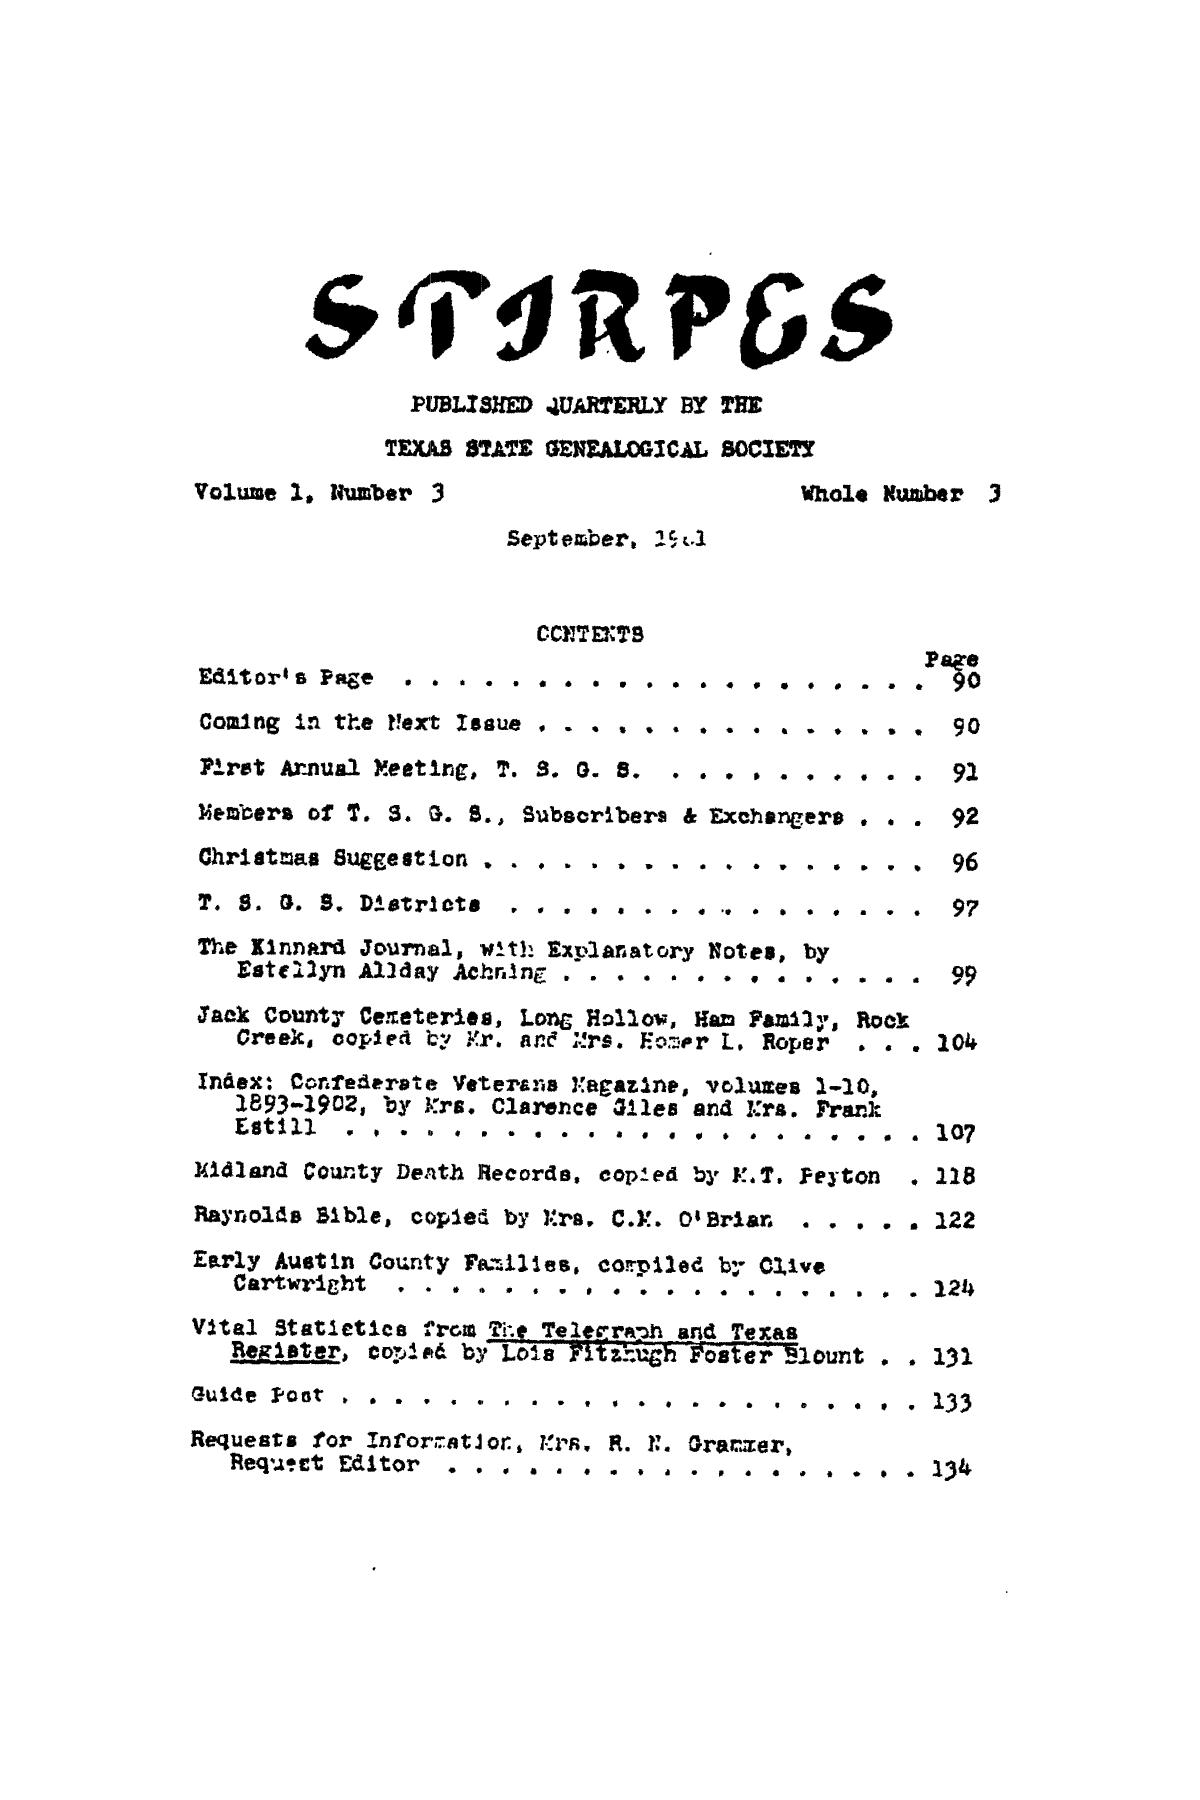 Stirpes, Volume 1, Number 3, September 1961                                                                                                      89